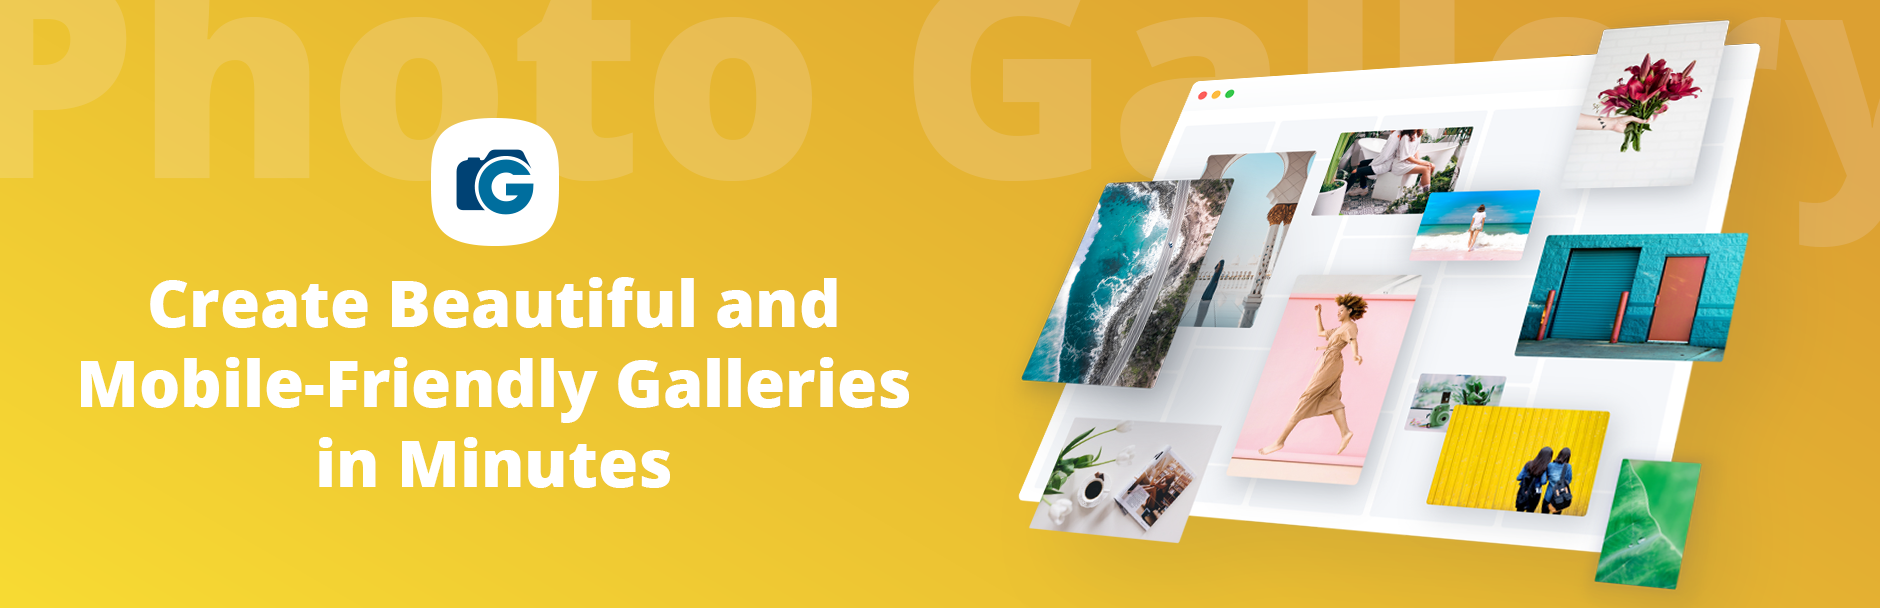 Photo Gallery by 10Web – Mobile-Friendly Image Gallery – WordPress